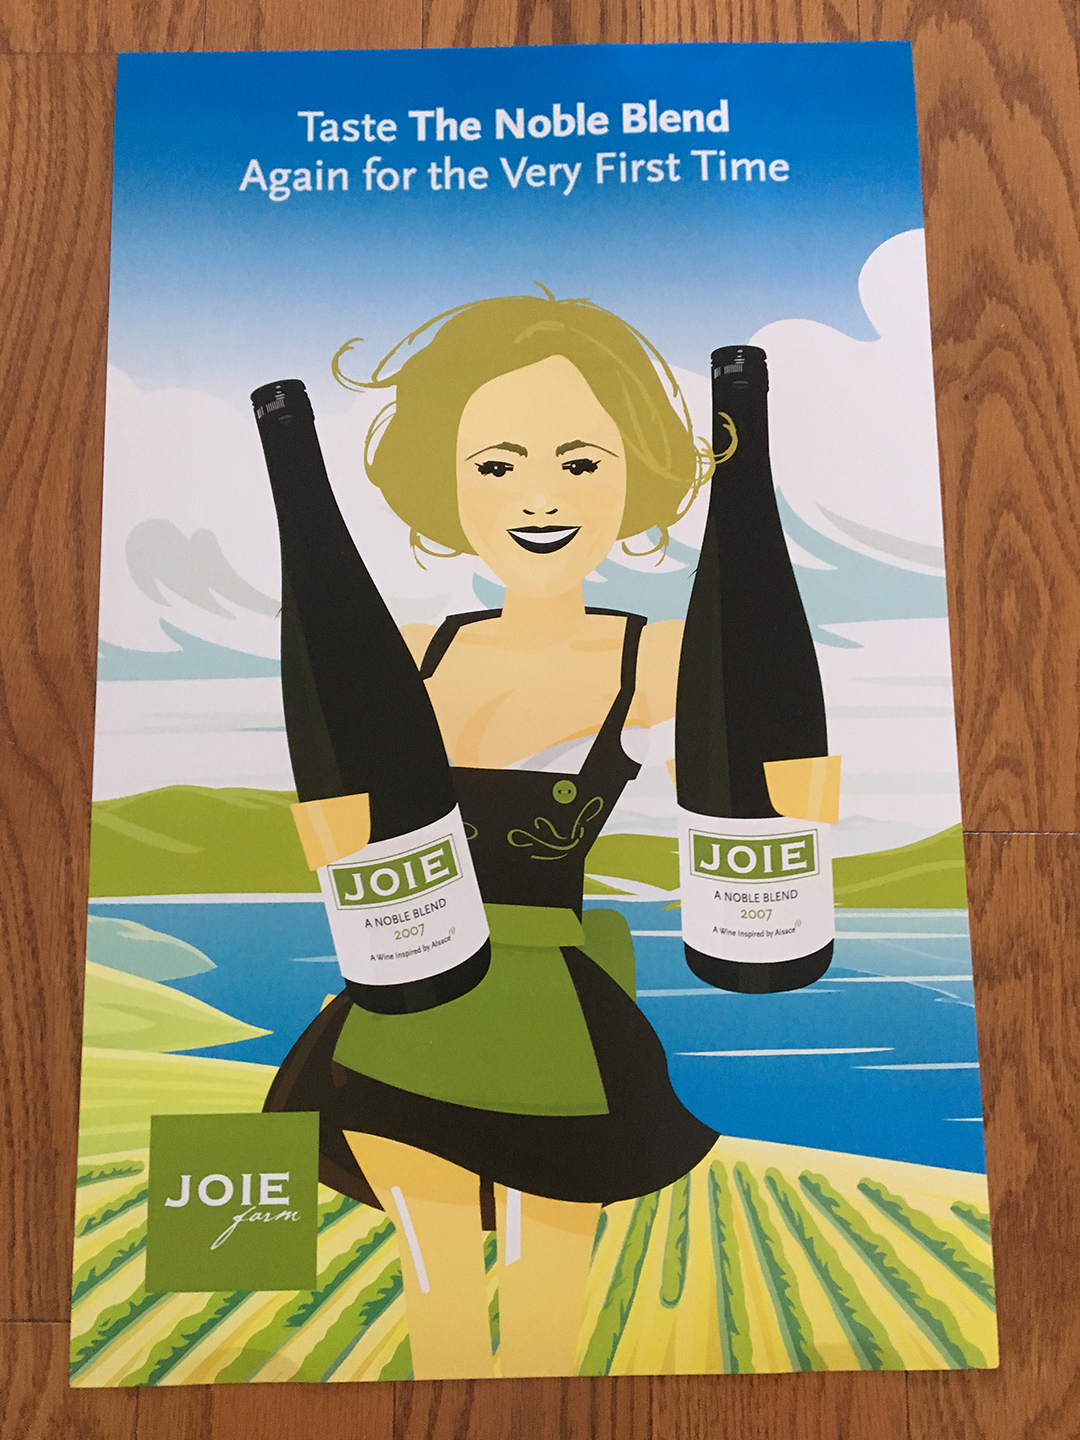 Cartoon illustration of a farm girl holding out two bottles of JOIE wine; vineyards, lakes, and mountains are in the background